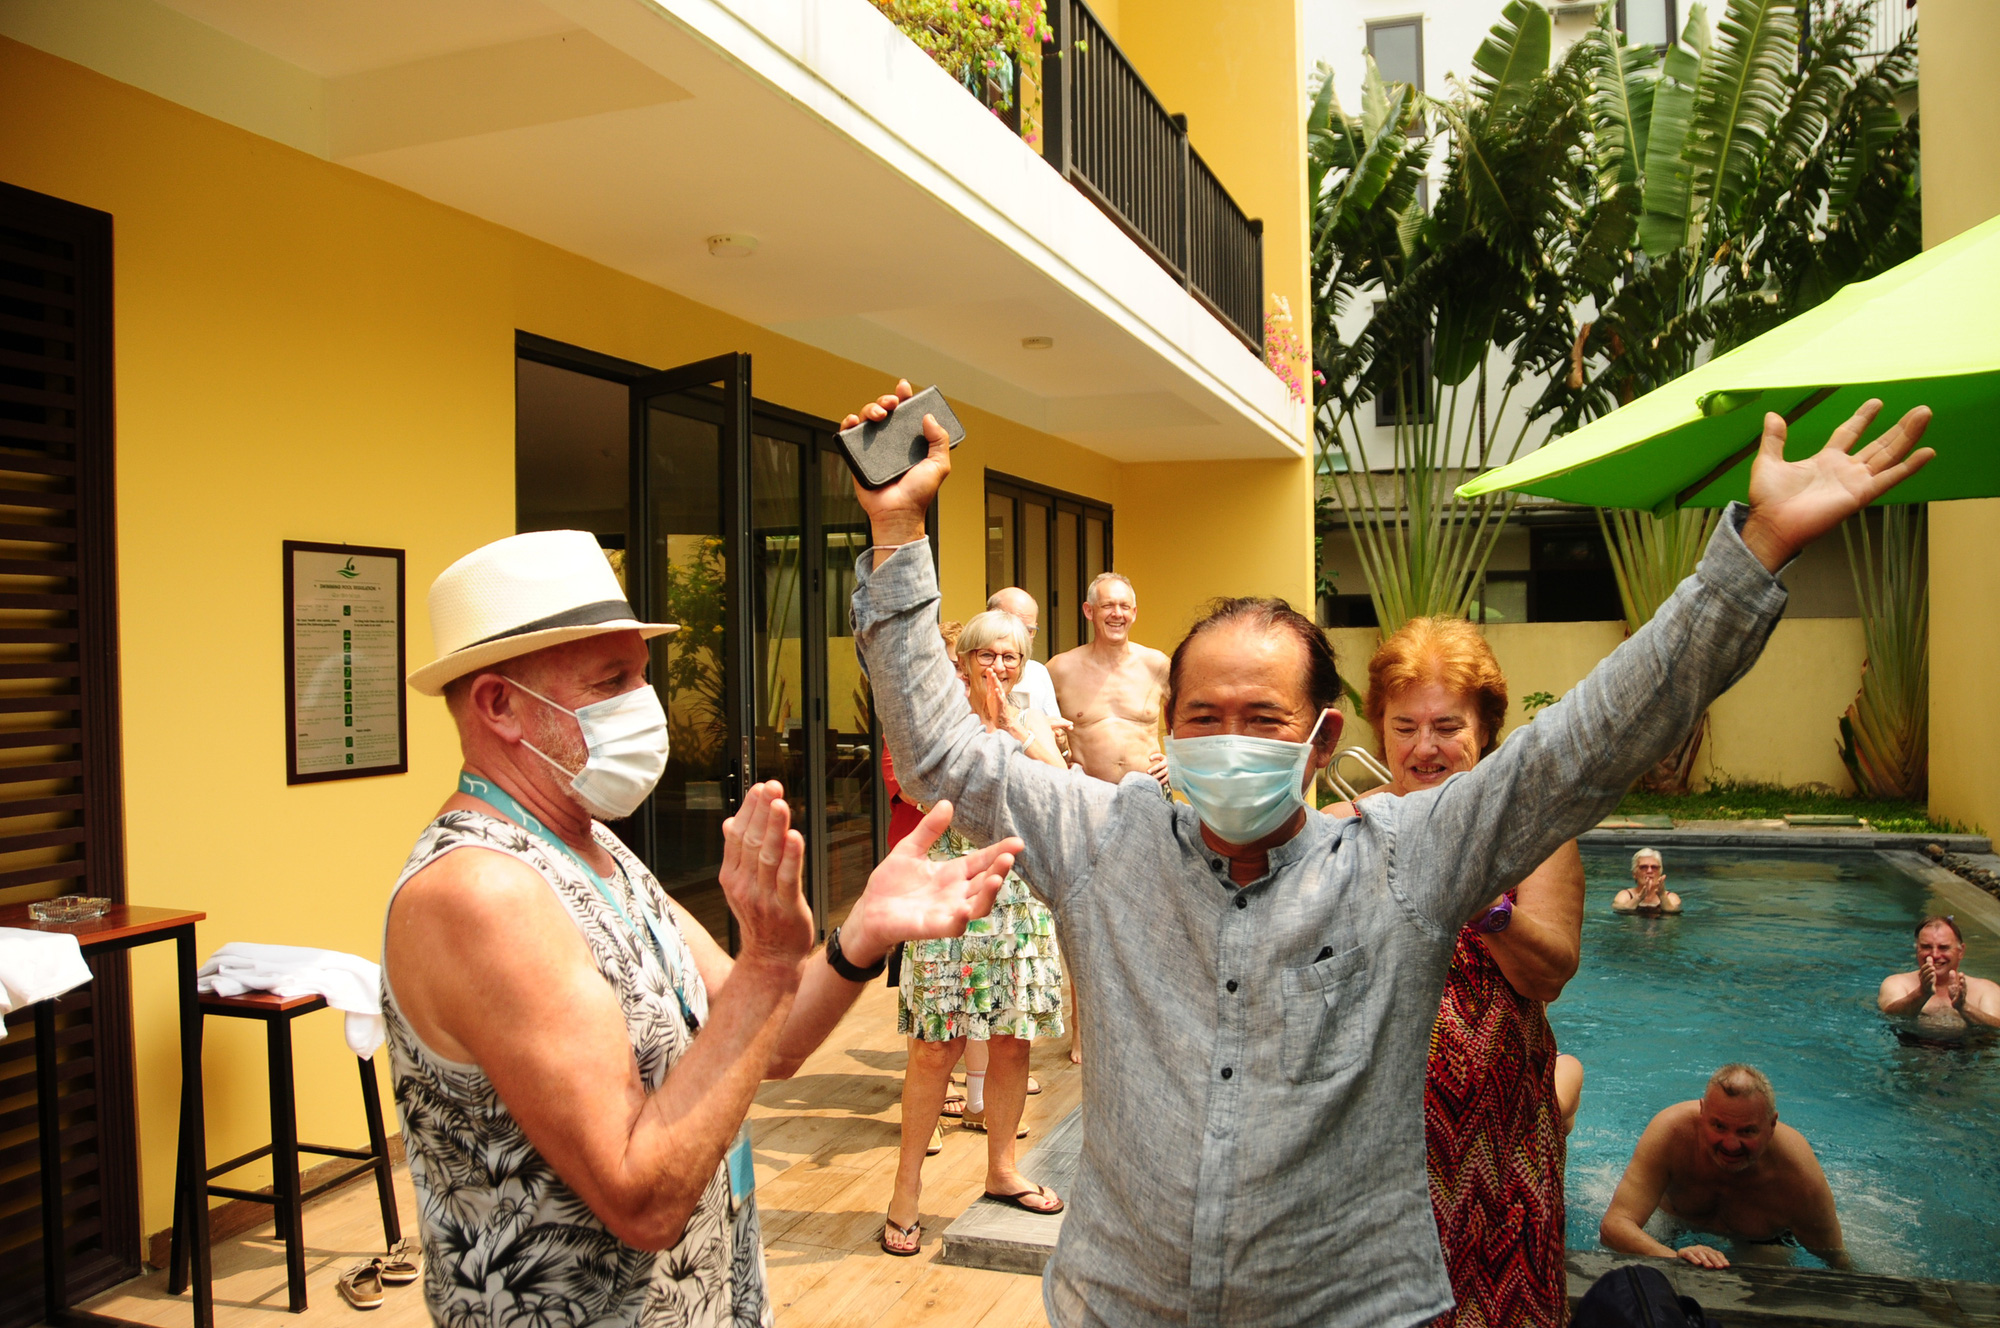 European tourists applaud the owner of Hoa Co homestay (right) for allotting the entire premises for quarantined visitors in Hoi An City, Quang Nam Province, Vietnam. Photo: Quoc Viet / Tuoi Tre